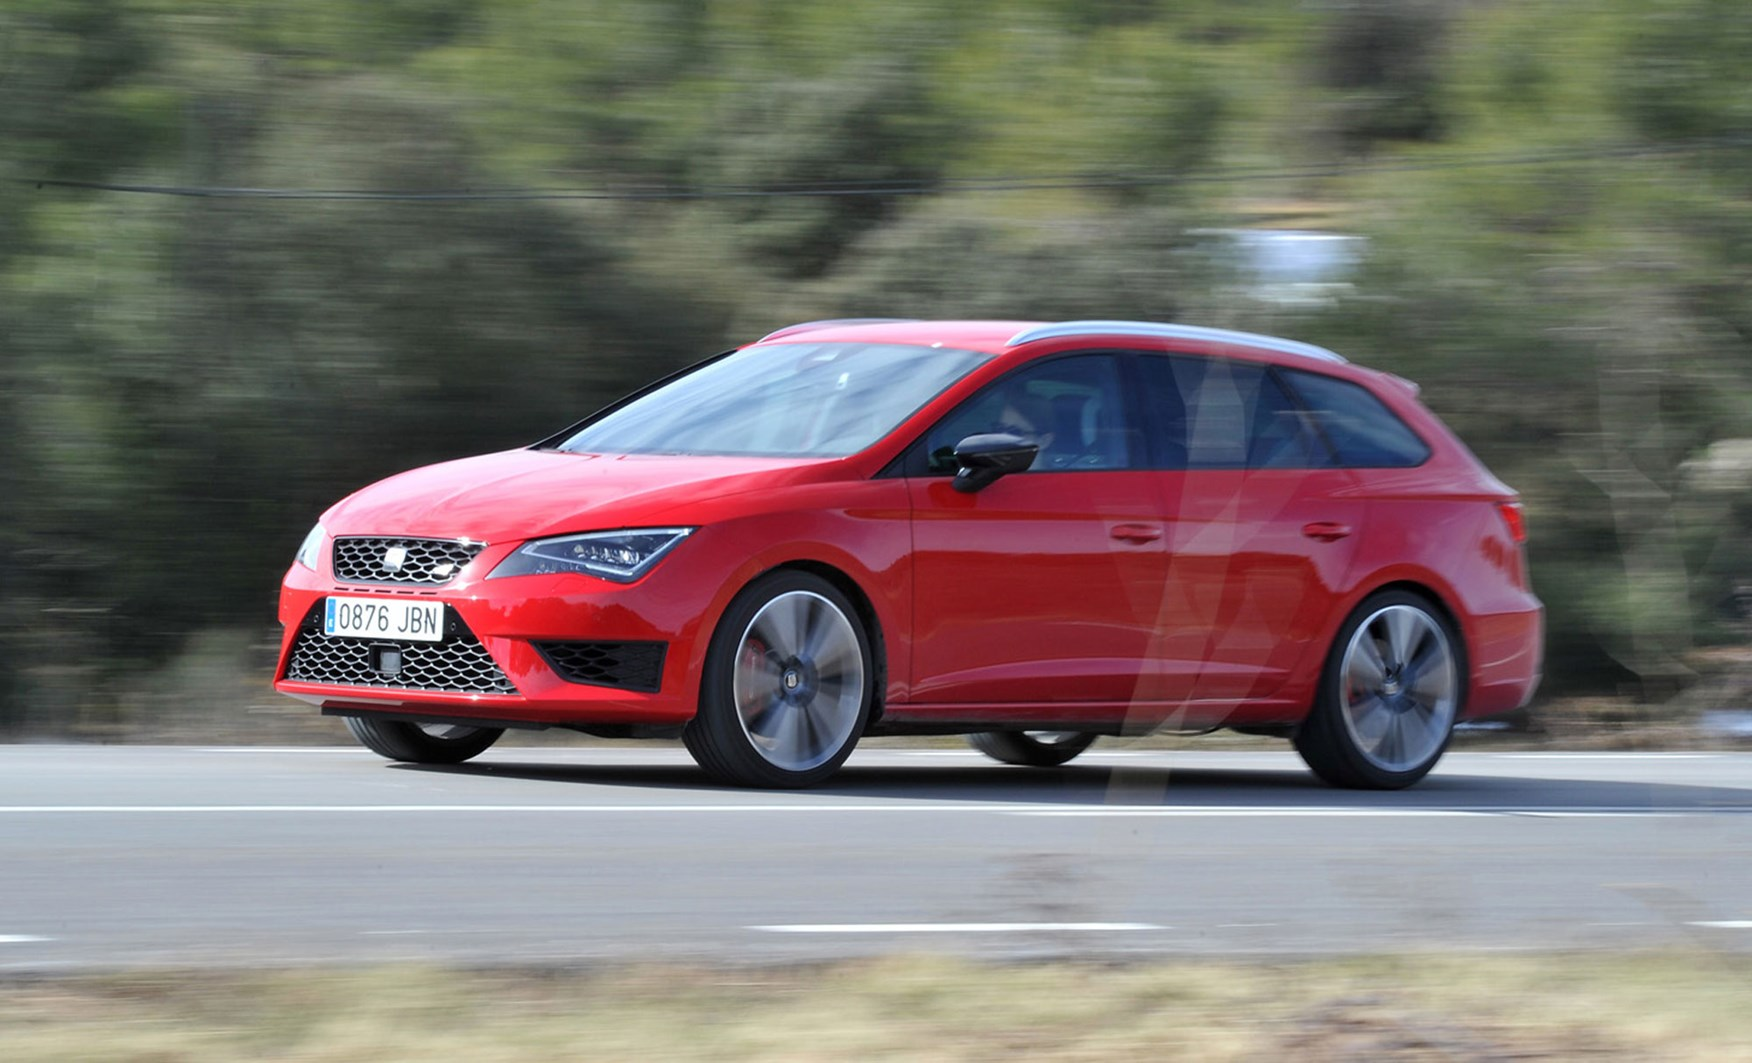 seat leon st cupra 280 2015 review by car magazine. Black Bedroom Furniture Sets. Home Design Ideas